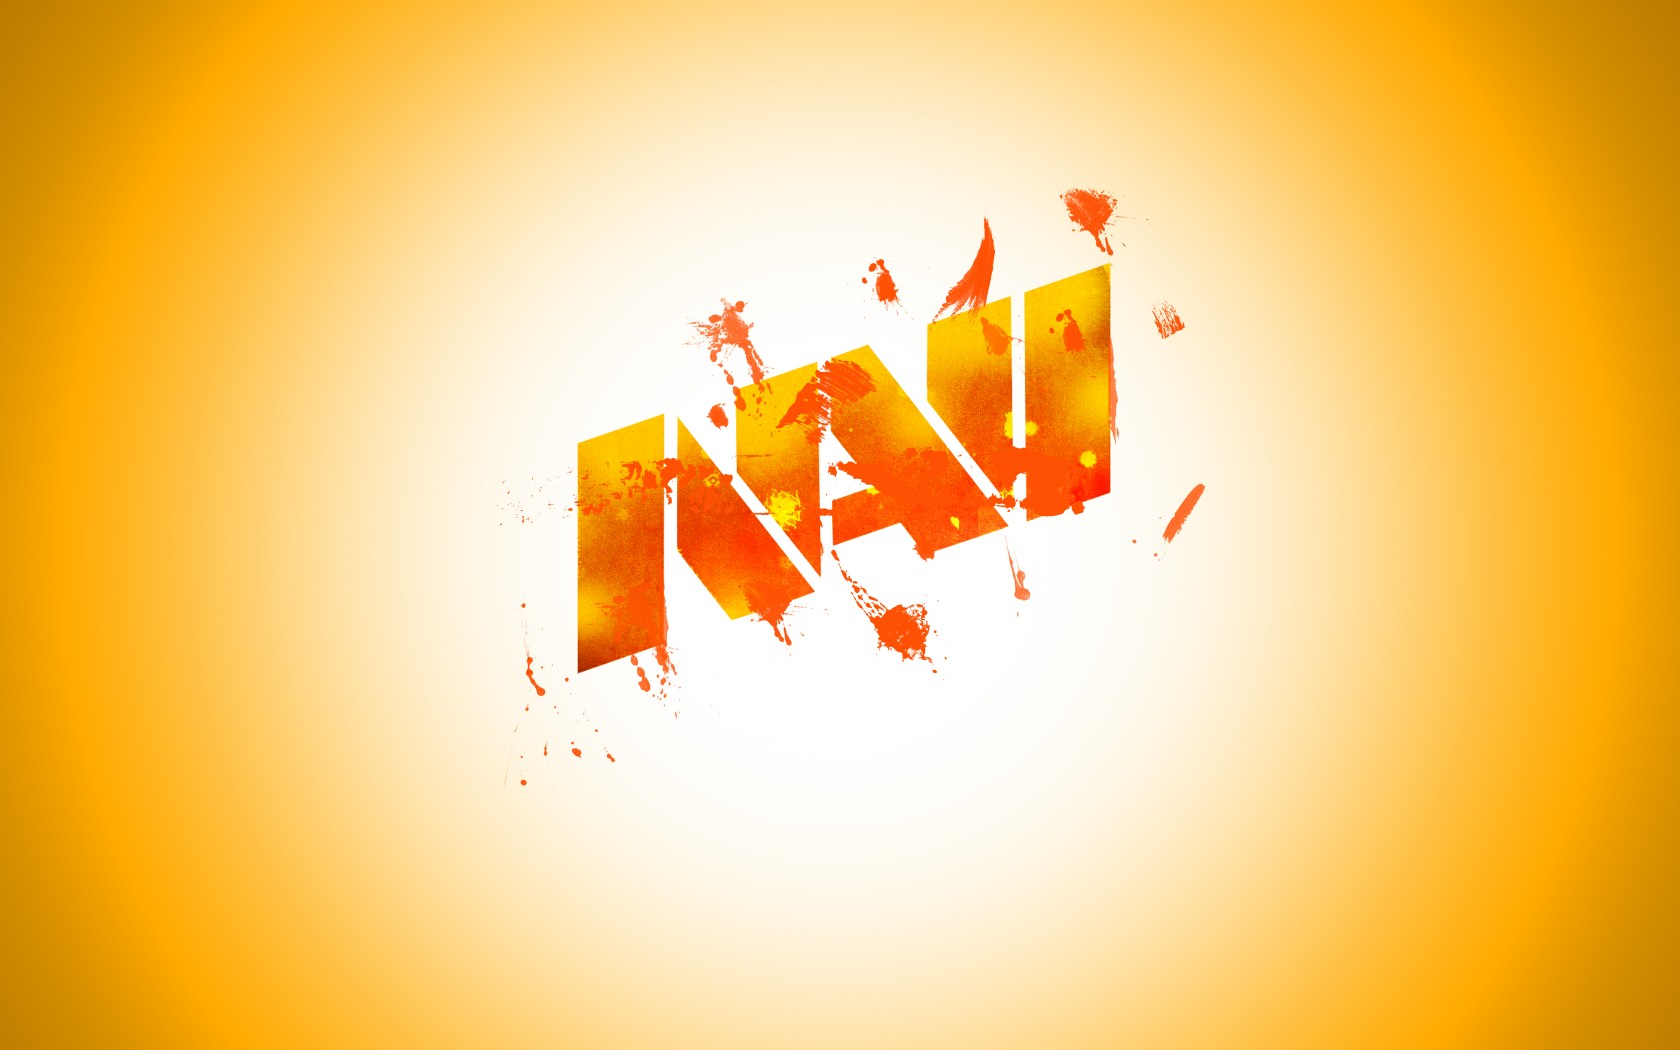 Navi computer desktop wallpaper Dota 2